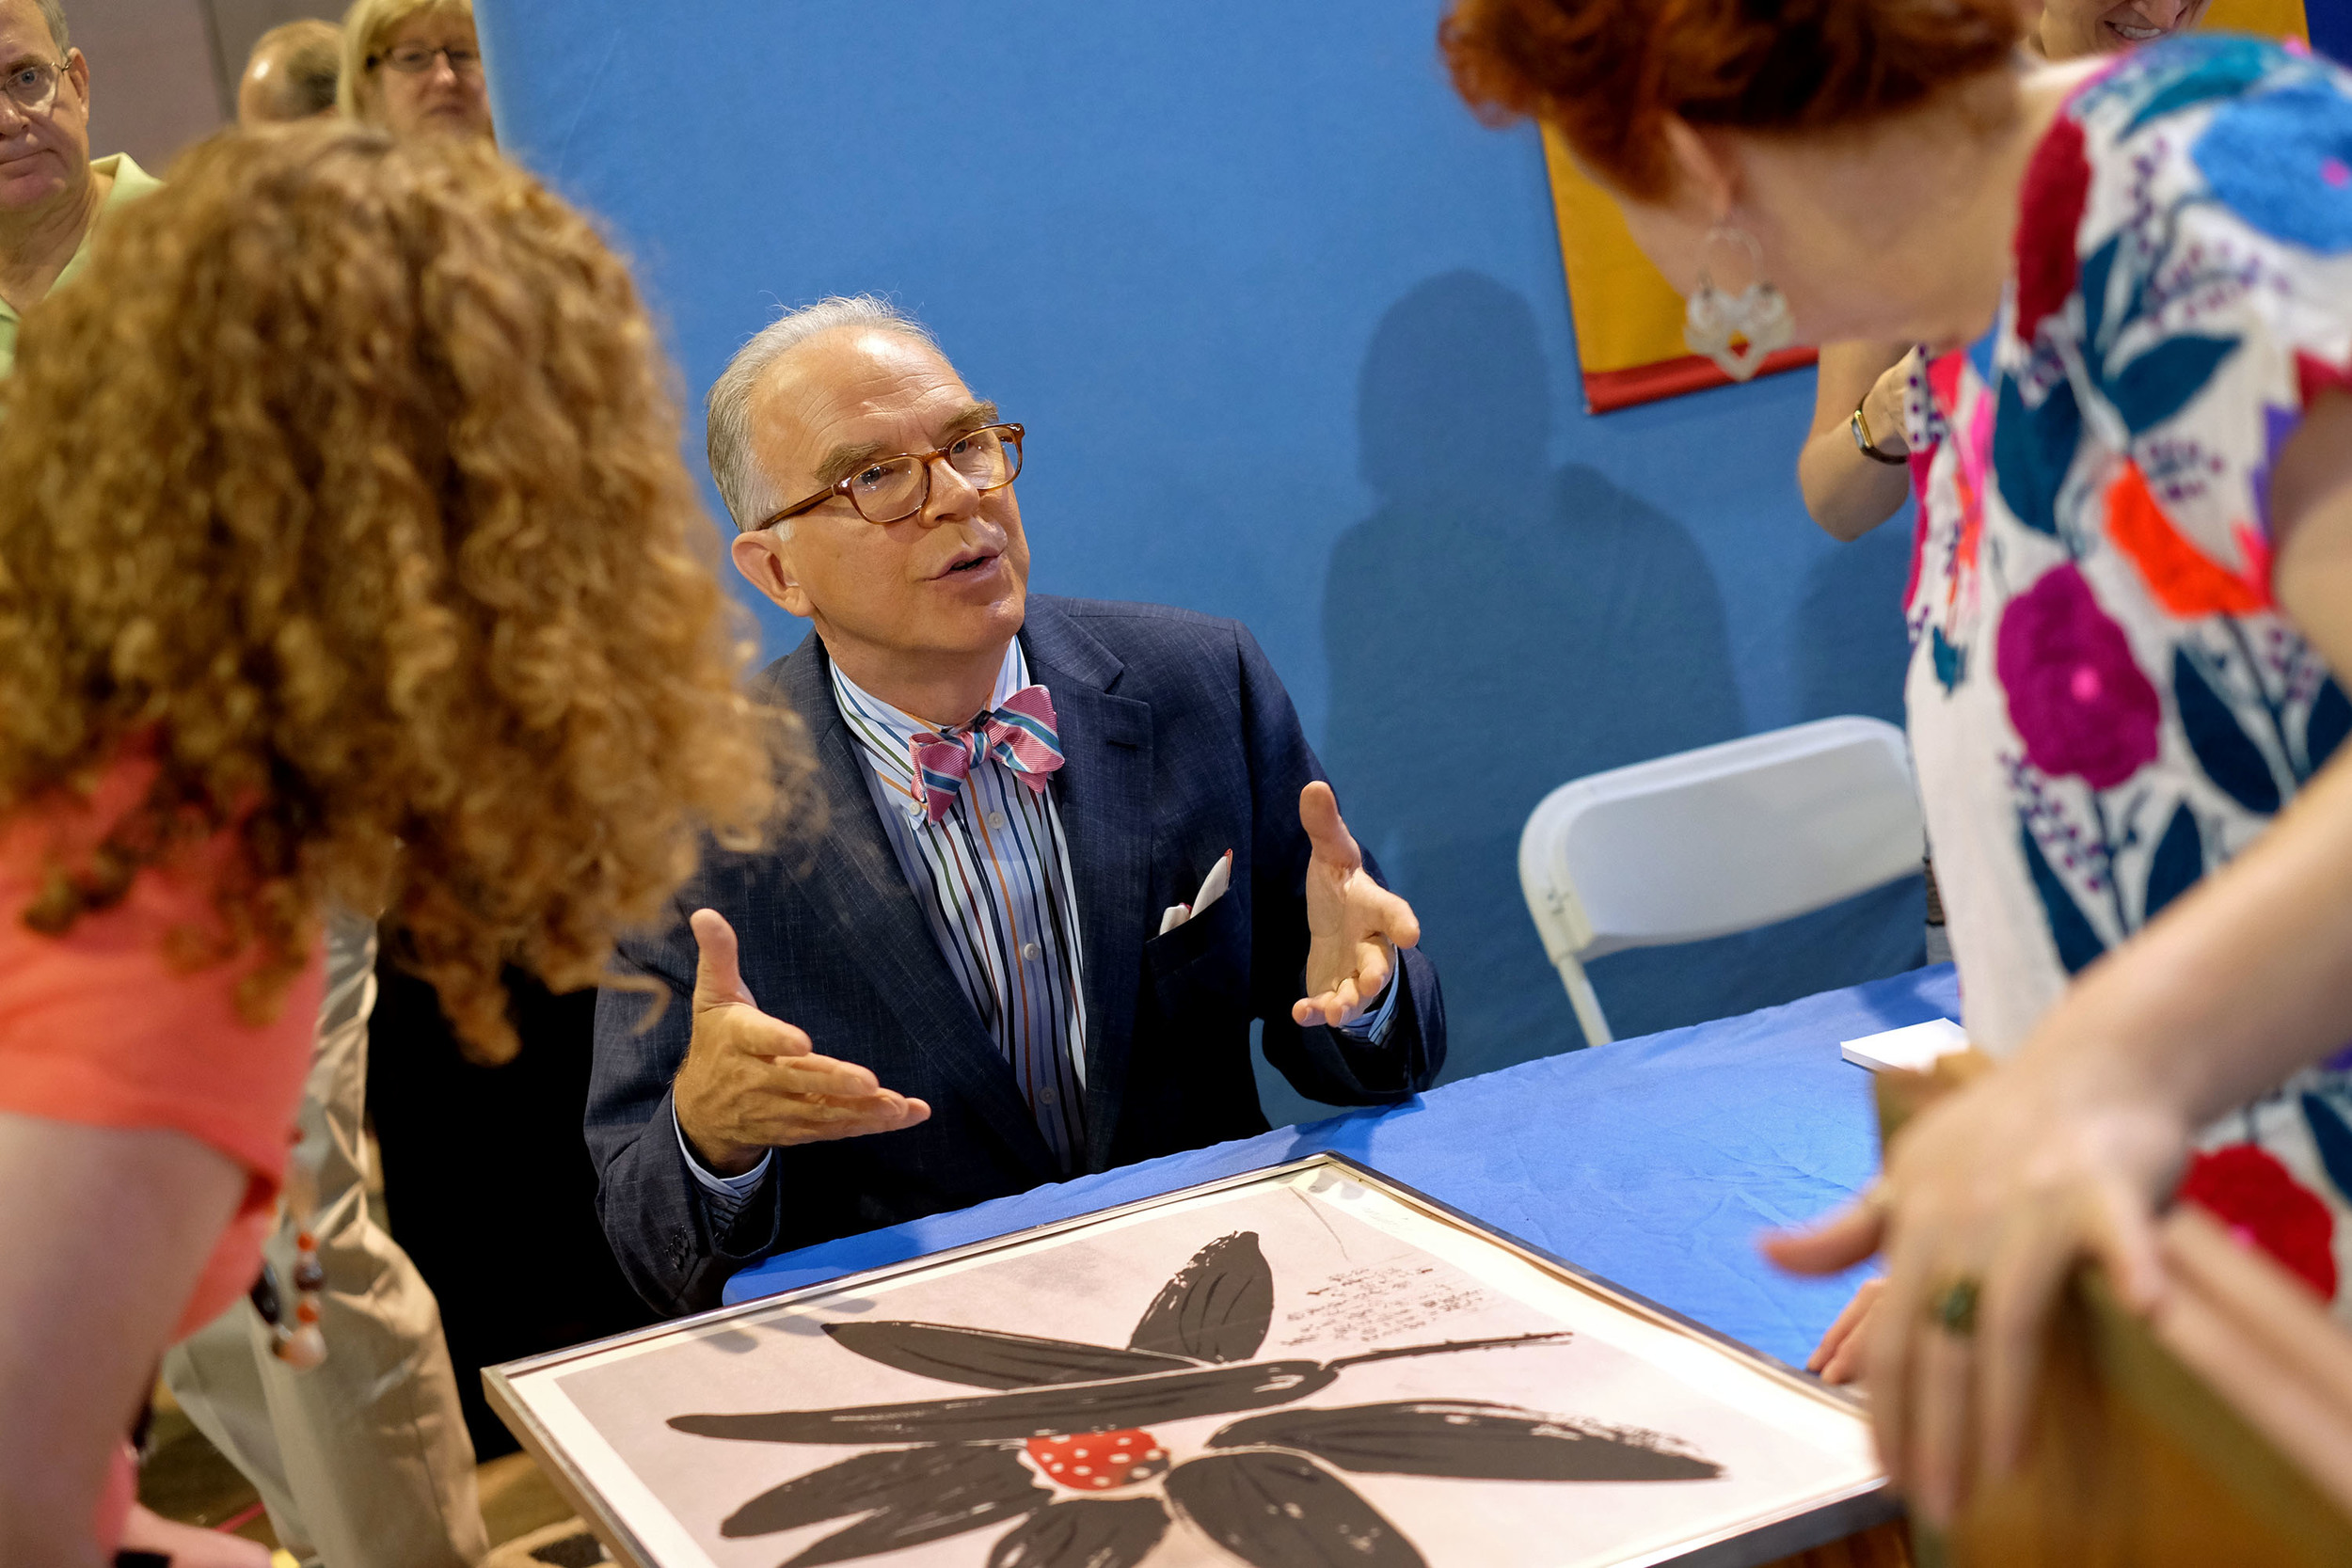 Asian Arts appraiser Lark Mason speaks with August, at left, and Alane, at right, about one of the prints they brought in to the Antiques Roadshow at the Albuquerque Convention Center, July 19, 2014, in Albuquerque NM. (Morgan Petroski/Journal)